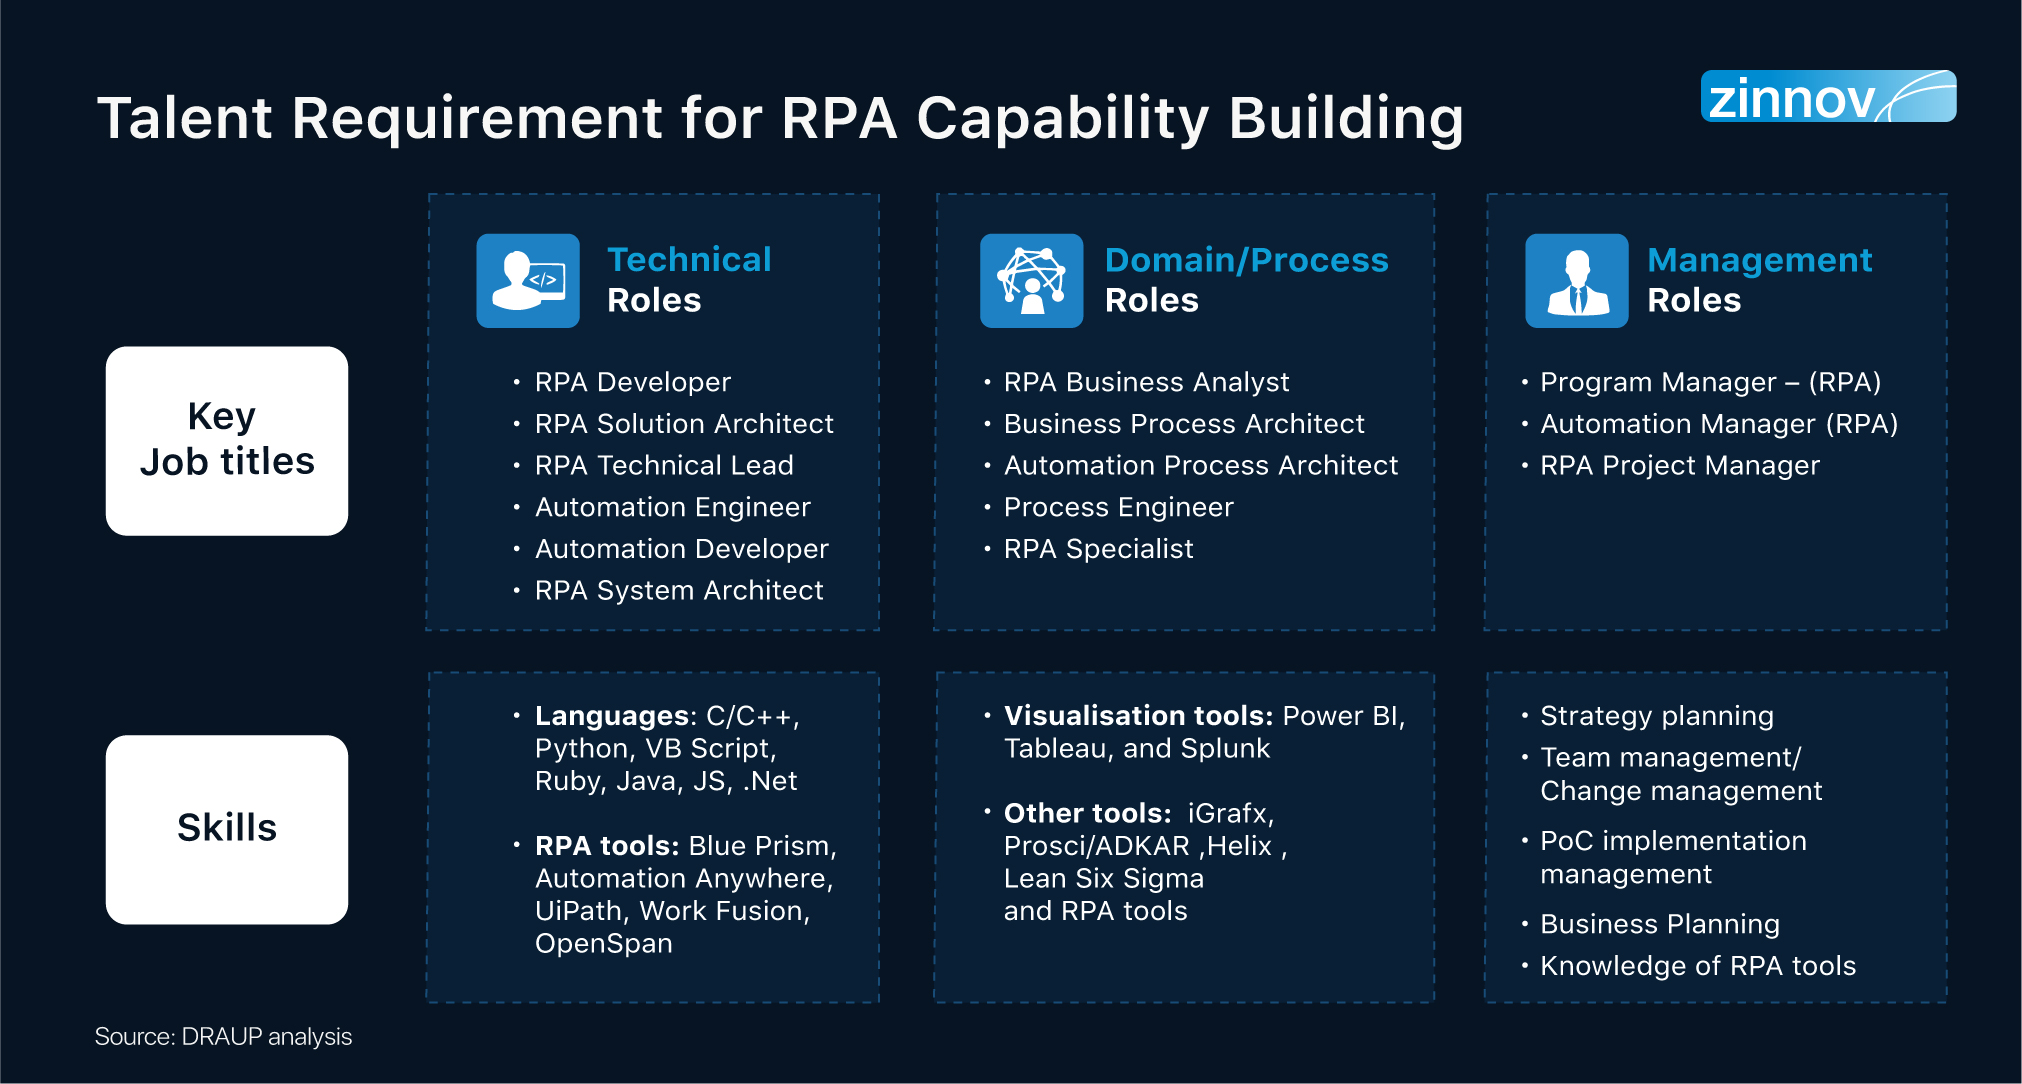 Talent Requirements for RPA Capability Building